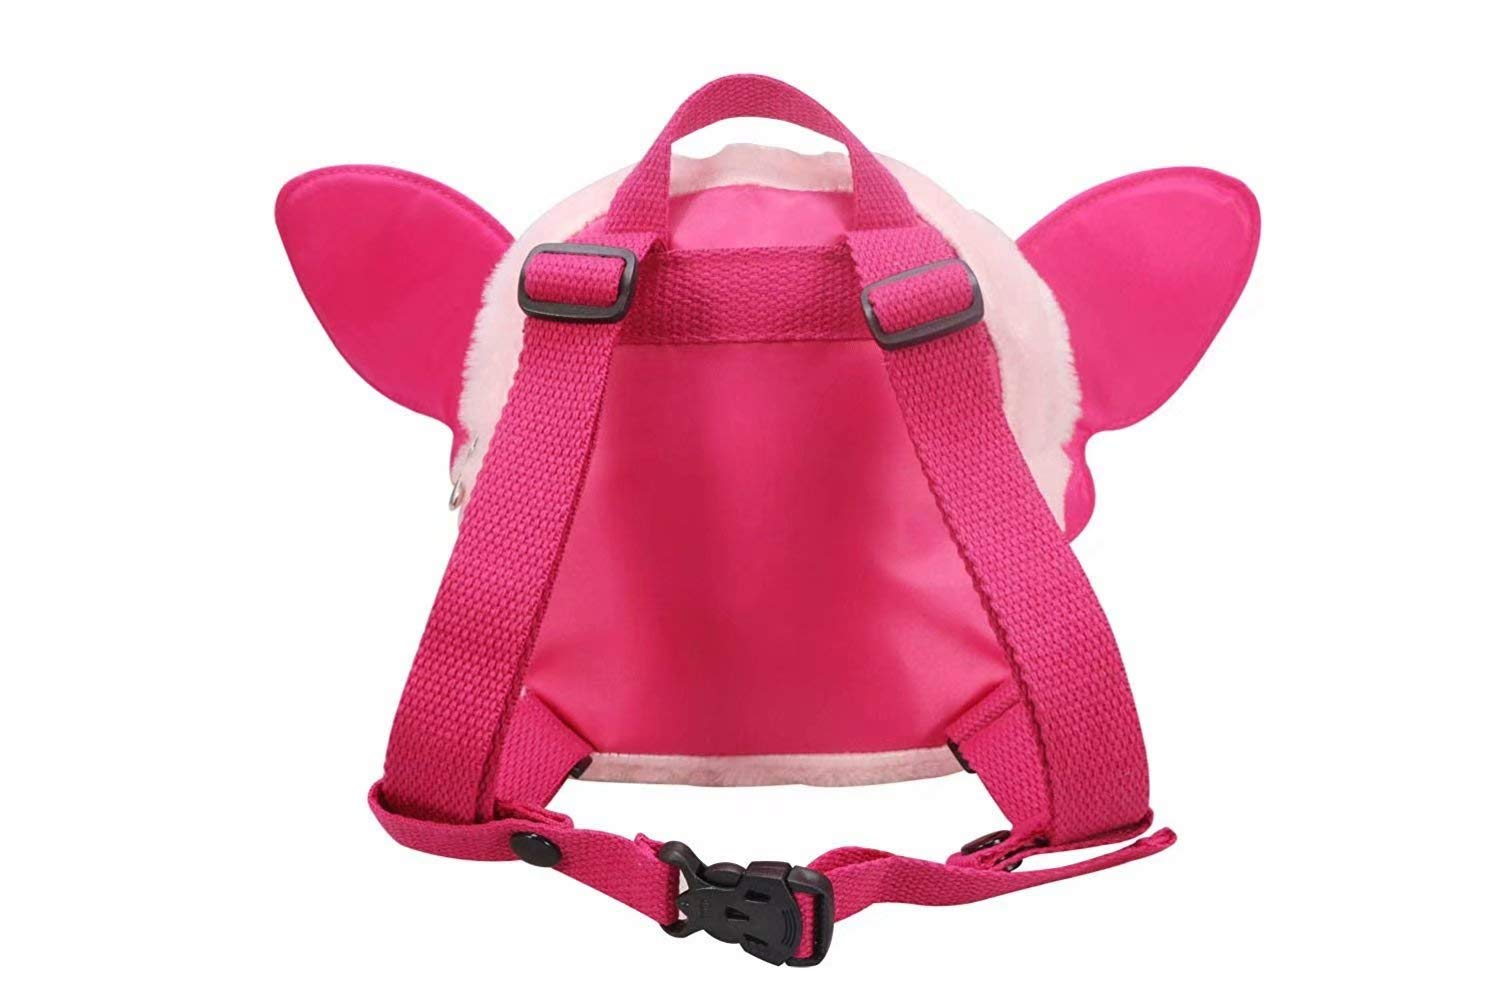 Oxford Pink OMALOO Baby Walking Safety Harness Reins Belt Kid Child Toddler Backpack Bag with Butterfly Pattern for 1-3 Years Girls